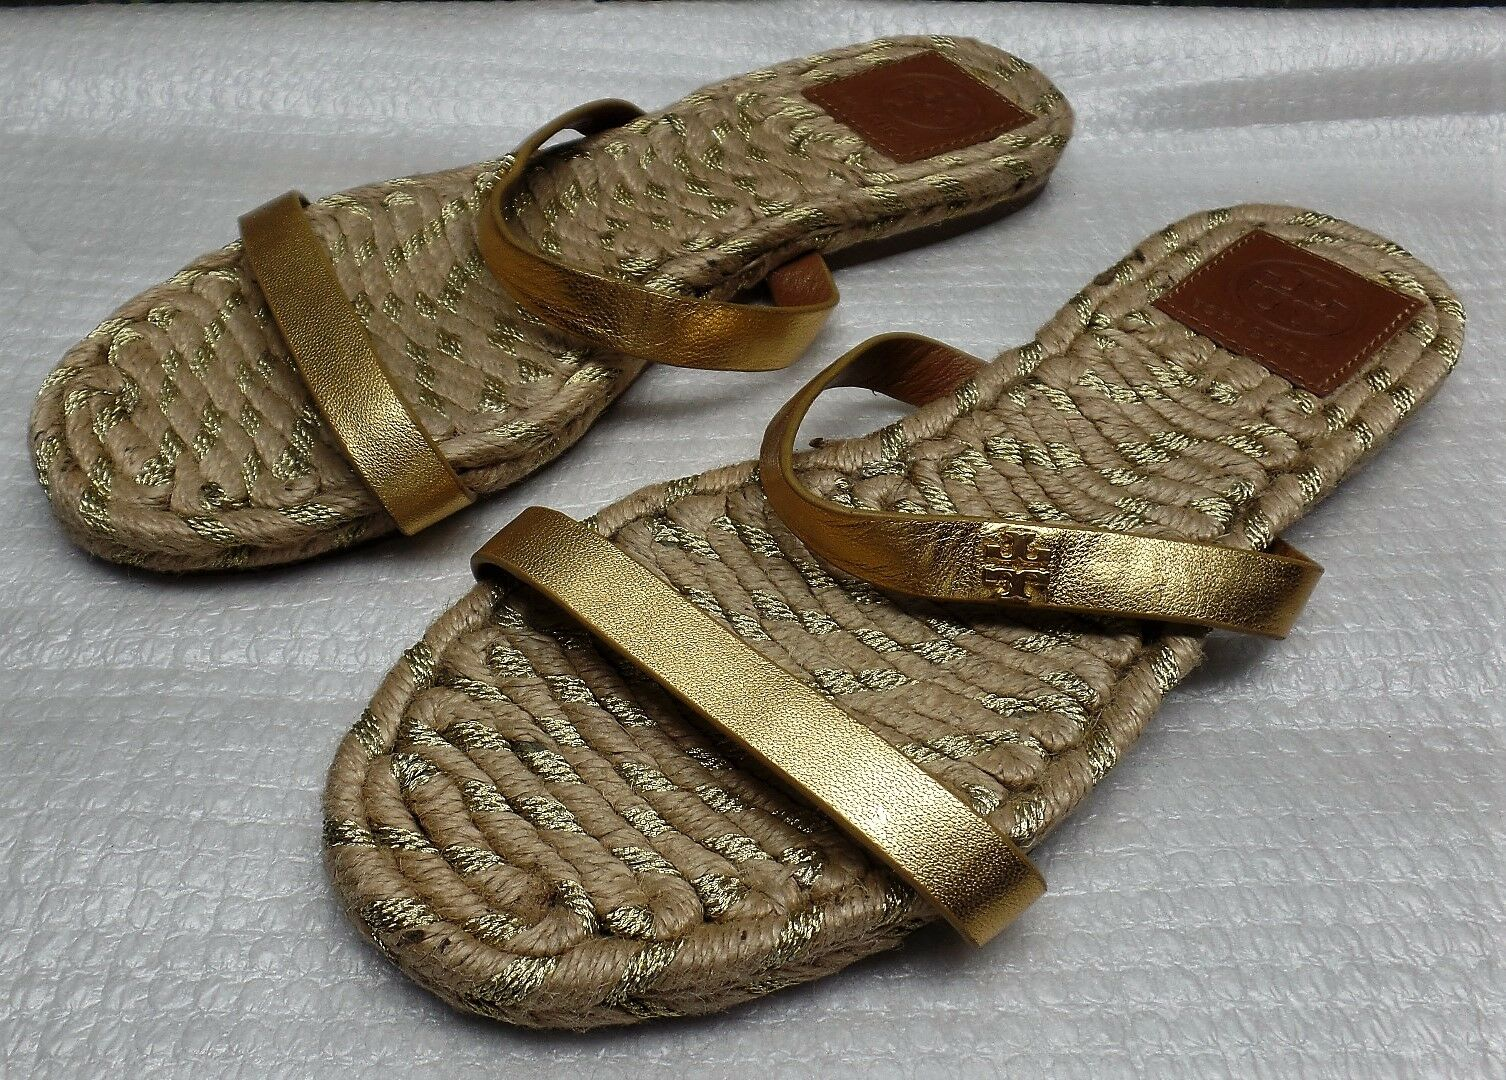 Tory Burch Metallic Leather Espadrille Slide Sandals -  125